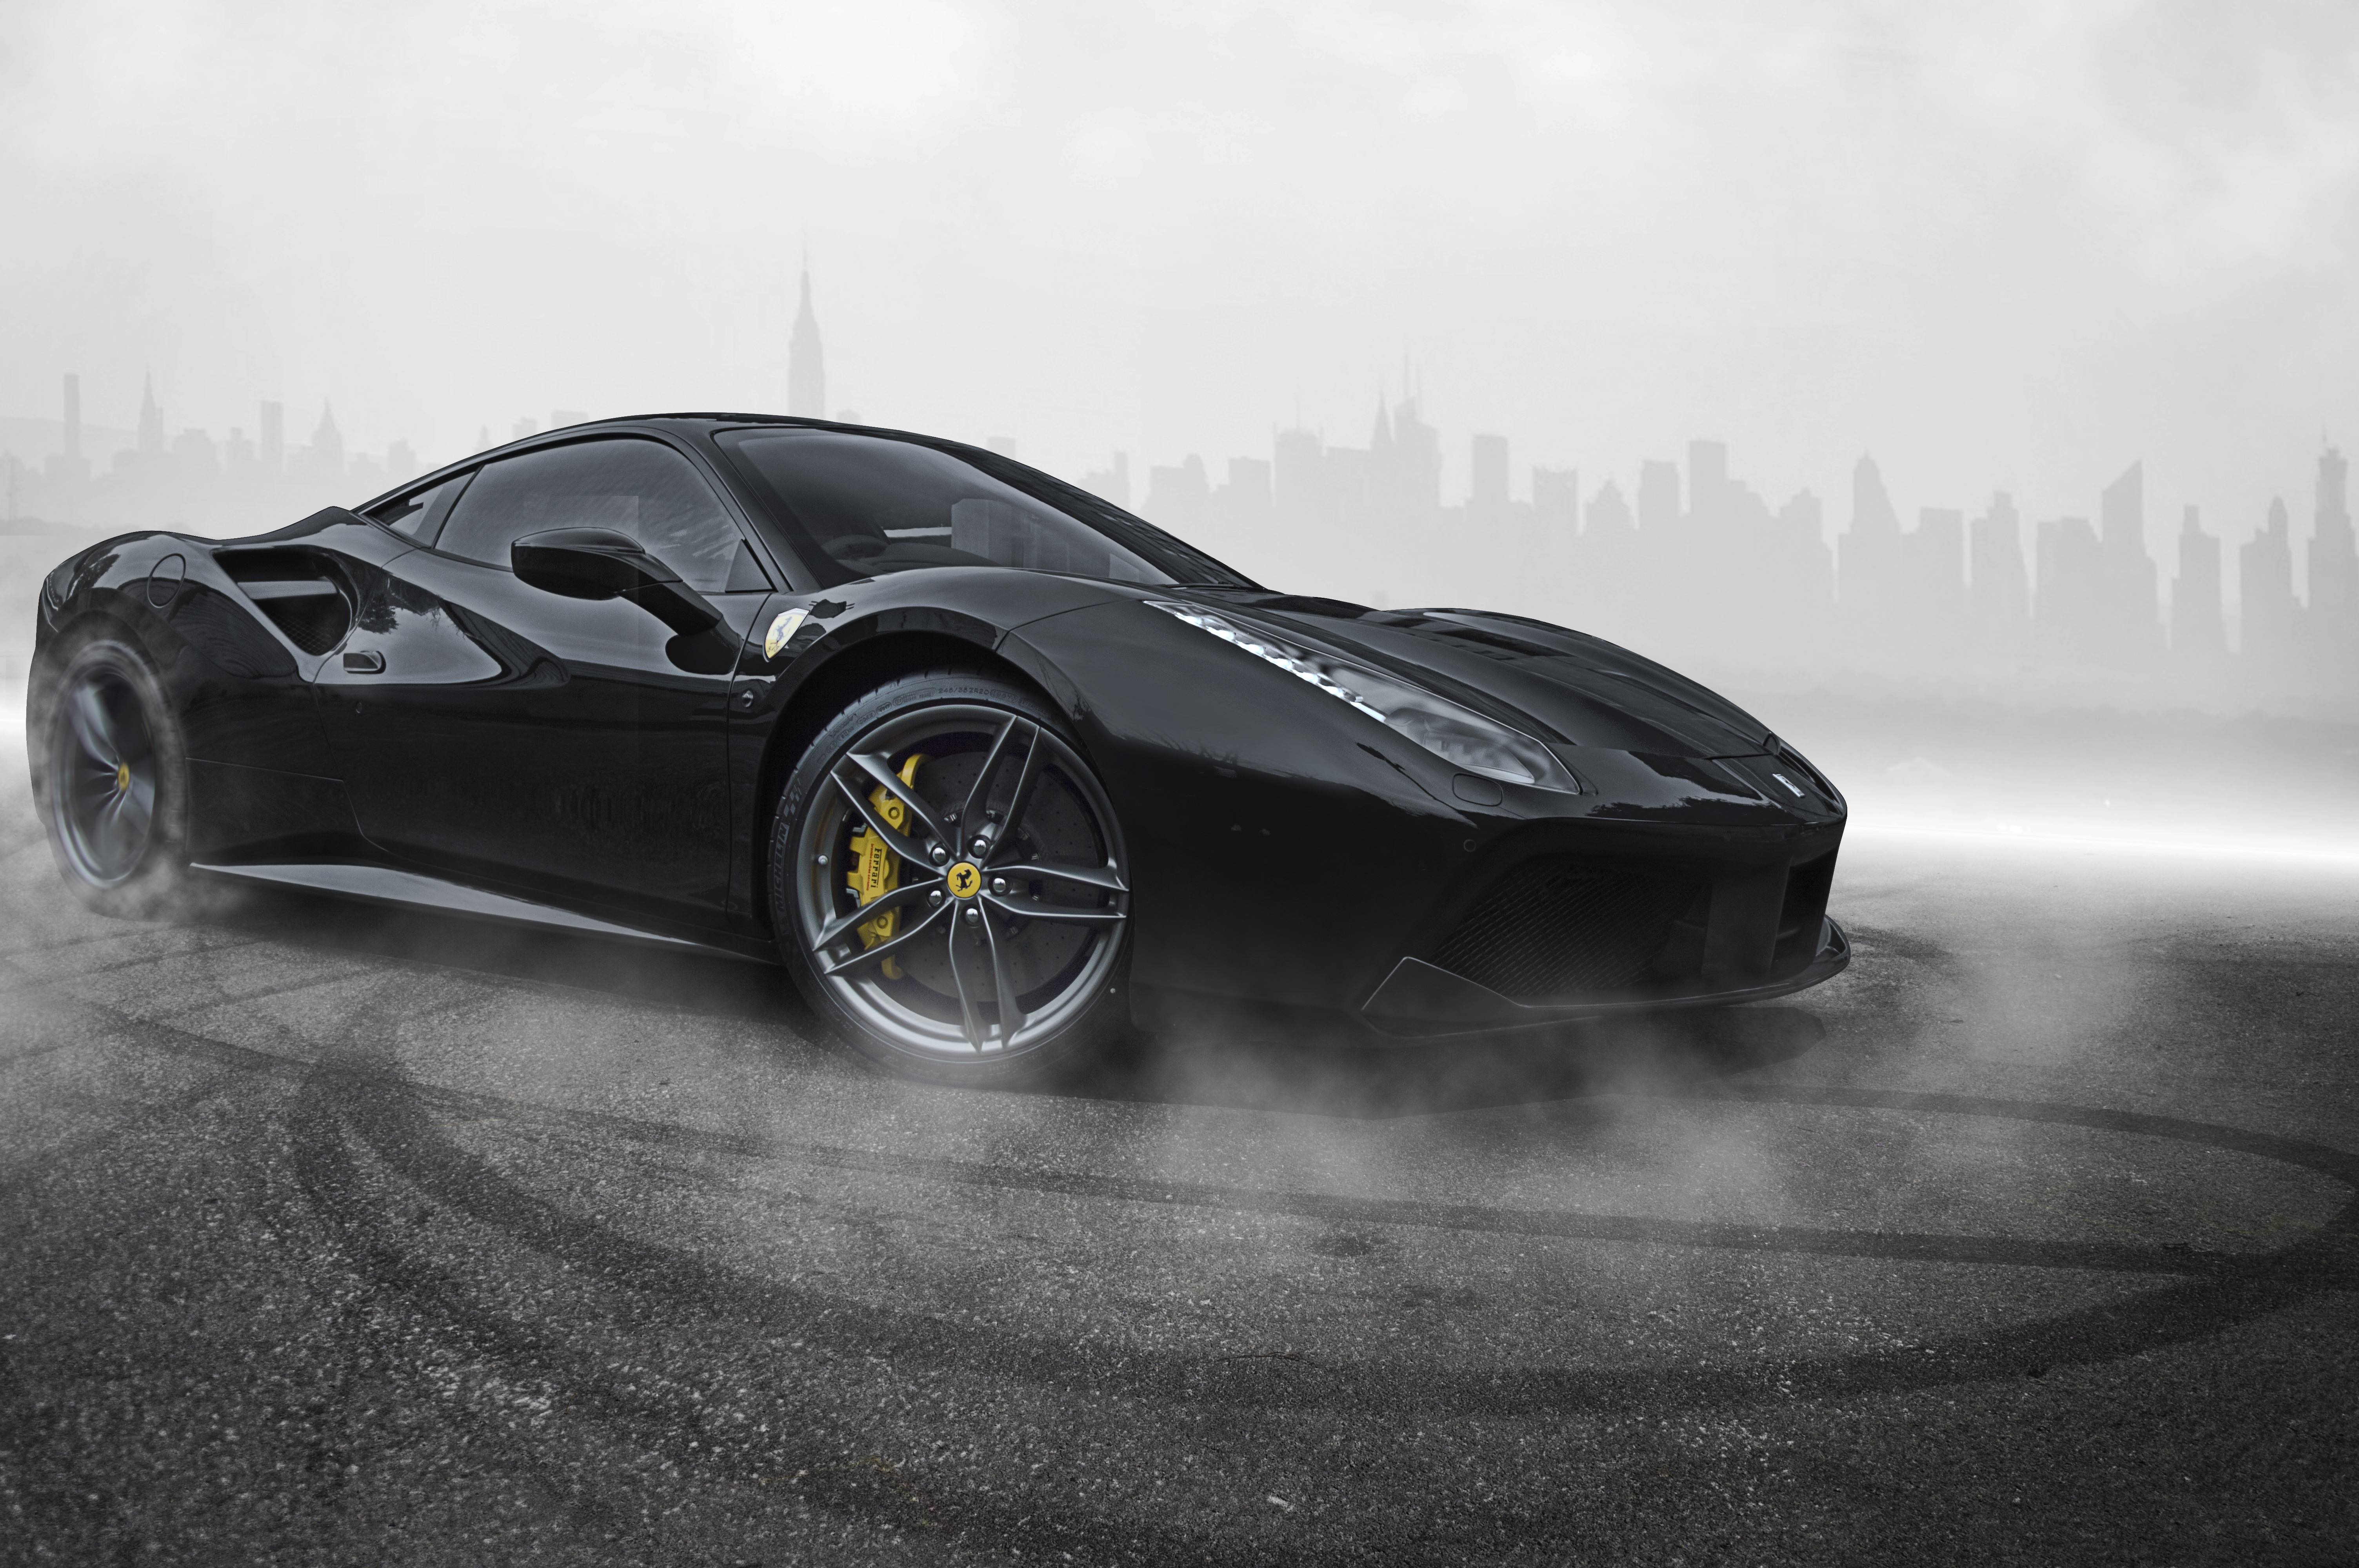 Ferrari 488 Black Hd Cars 4k Wallpapers Images Backgrounds Photos And Pictures